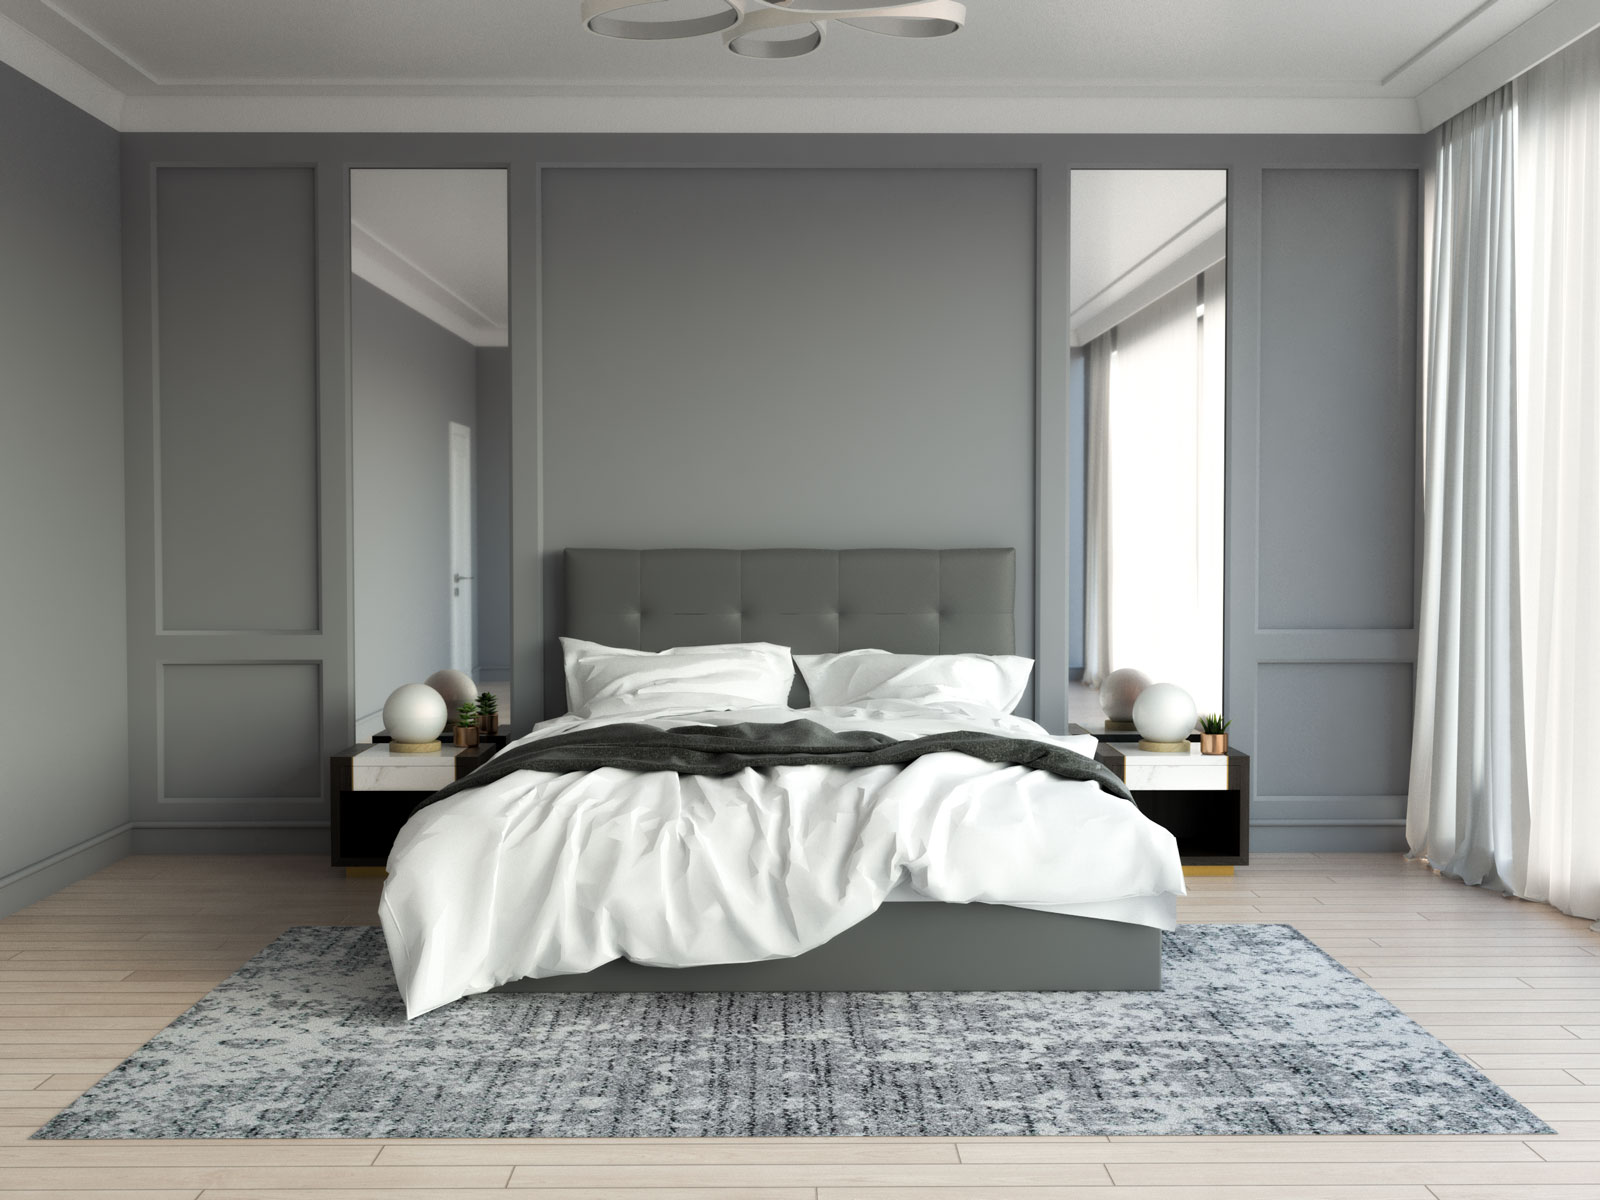 Gray and white rug with gray bedroom